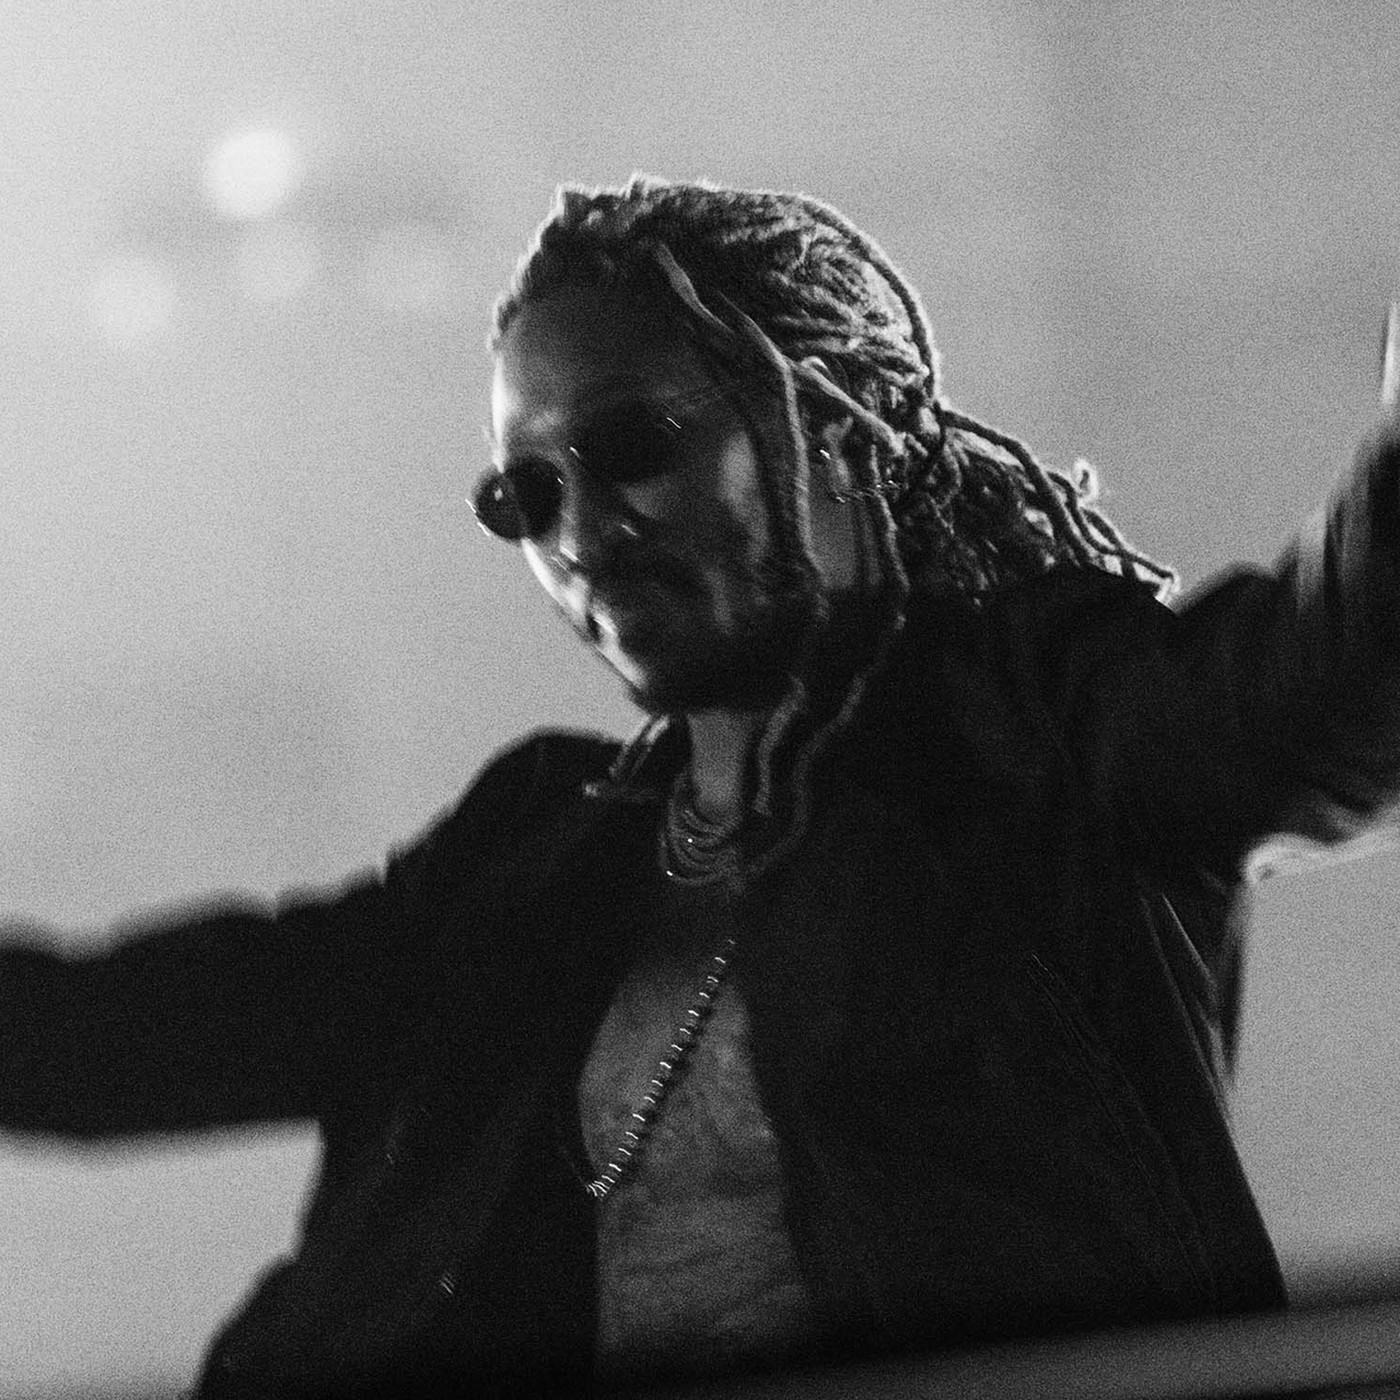 Future is 'High Off Life' on new album - REVOLT